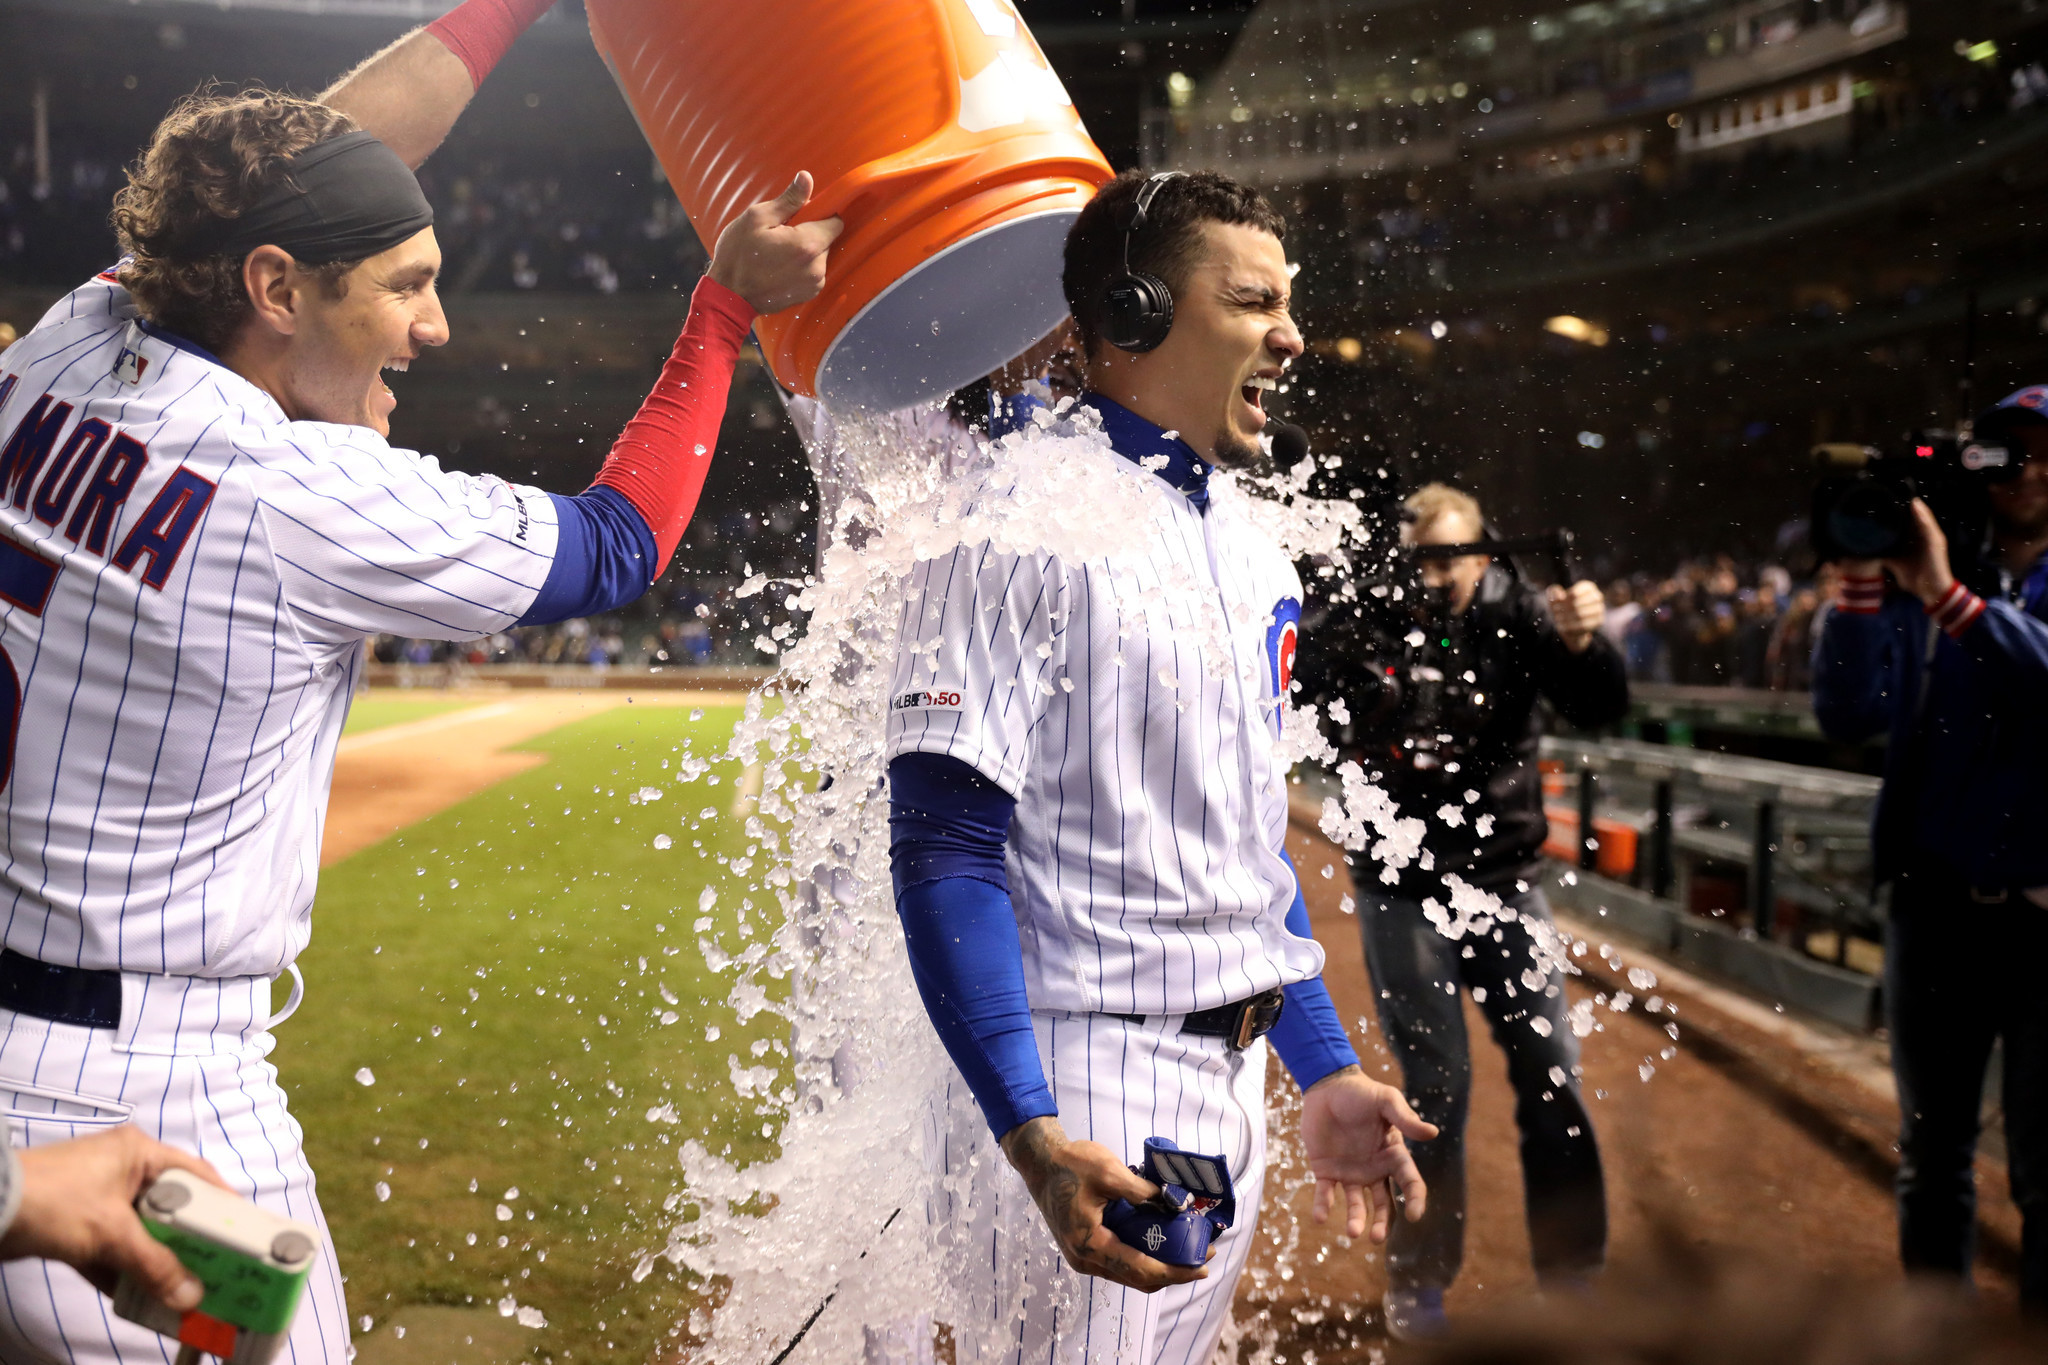 How Javier Baez talked his way into a pinch-hit, game-winning single in Tuesday's Cubs win